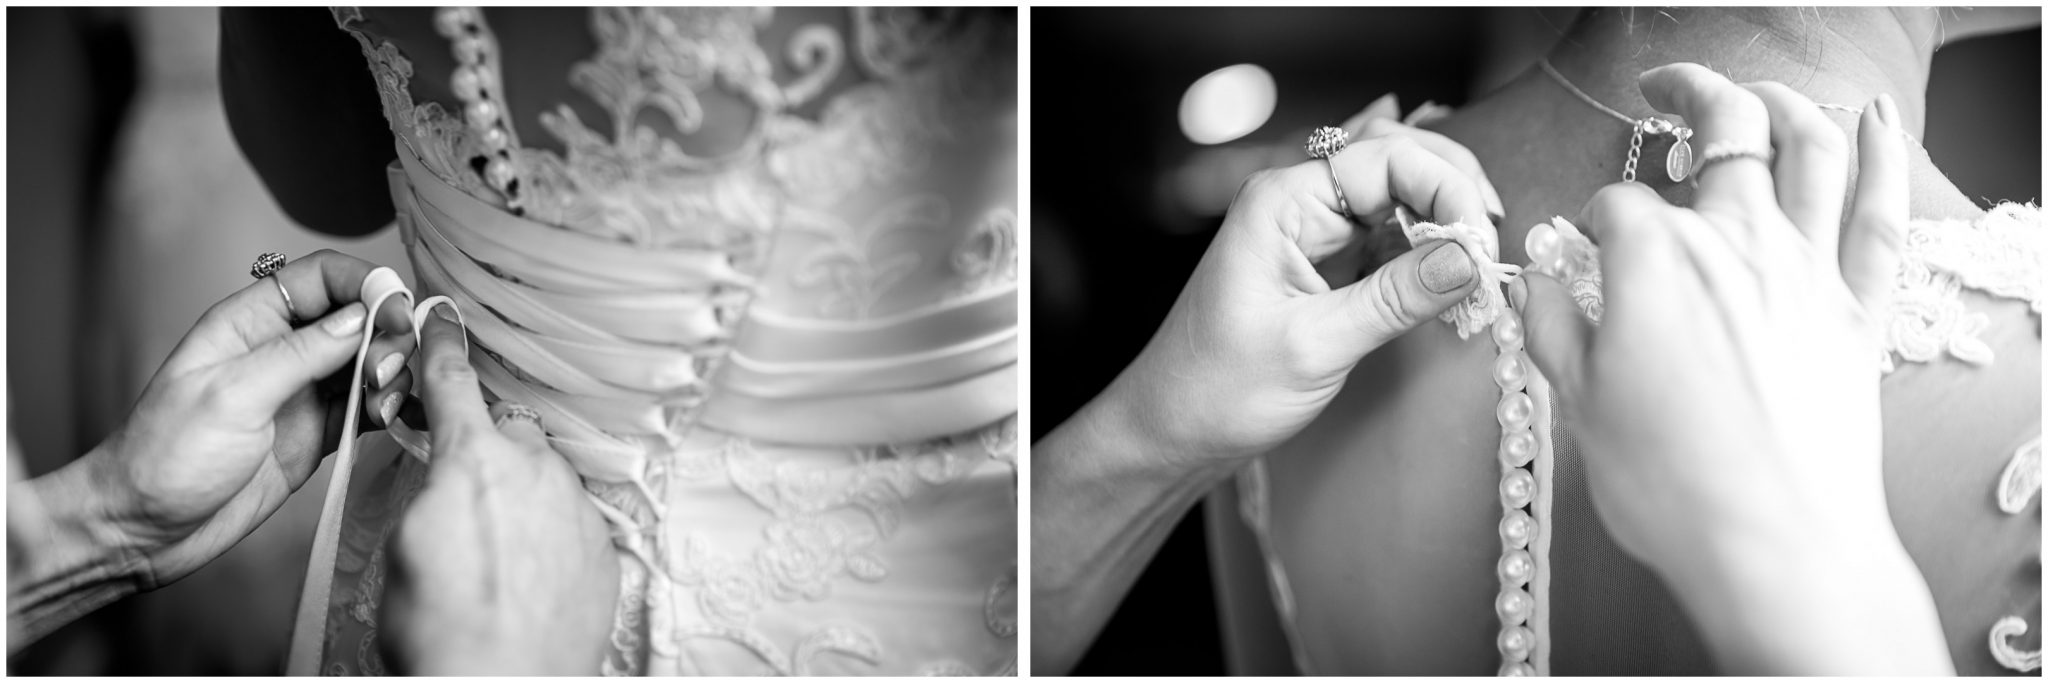 Details of the back of the wedding dress as the bride gets ready